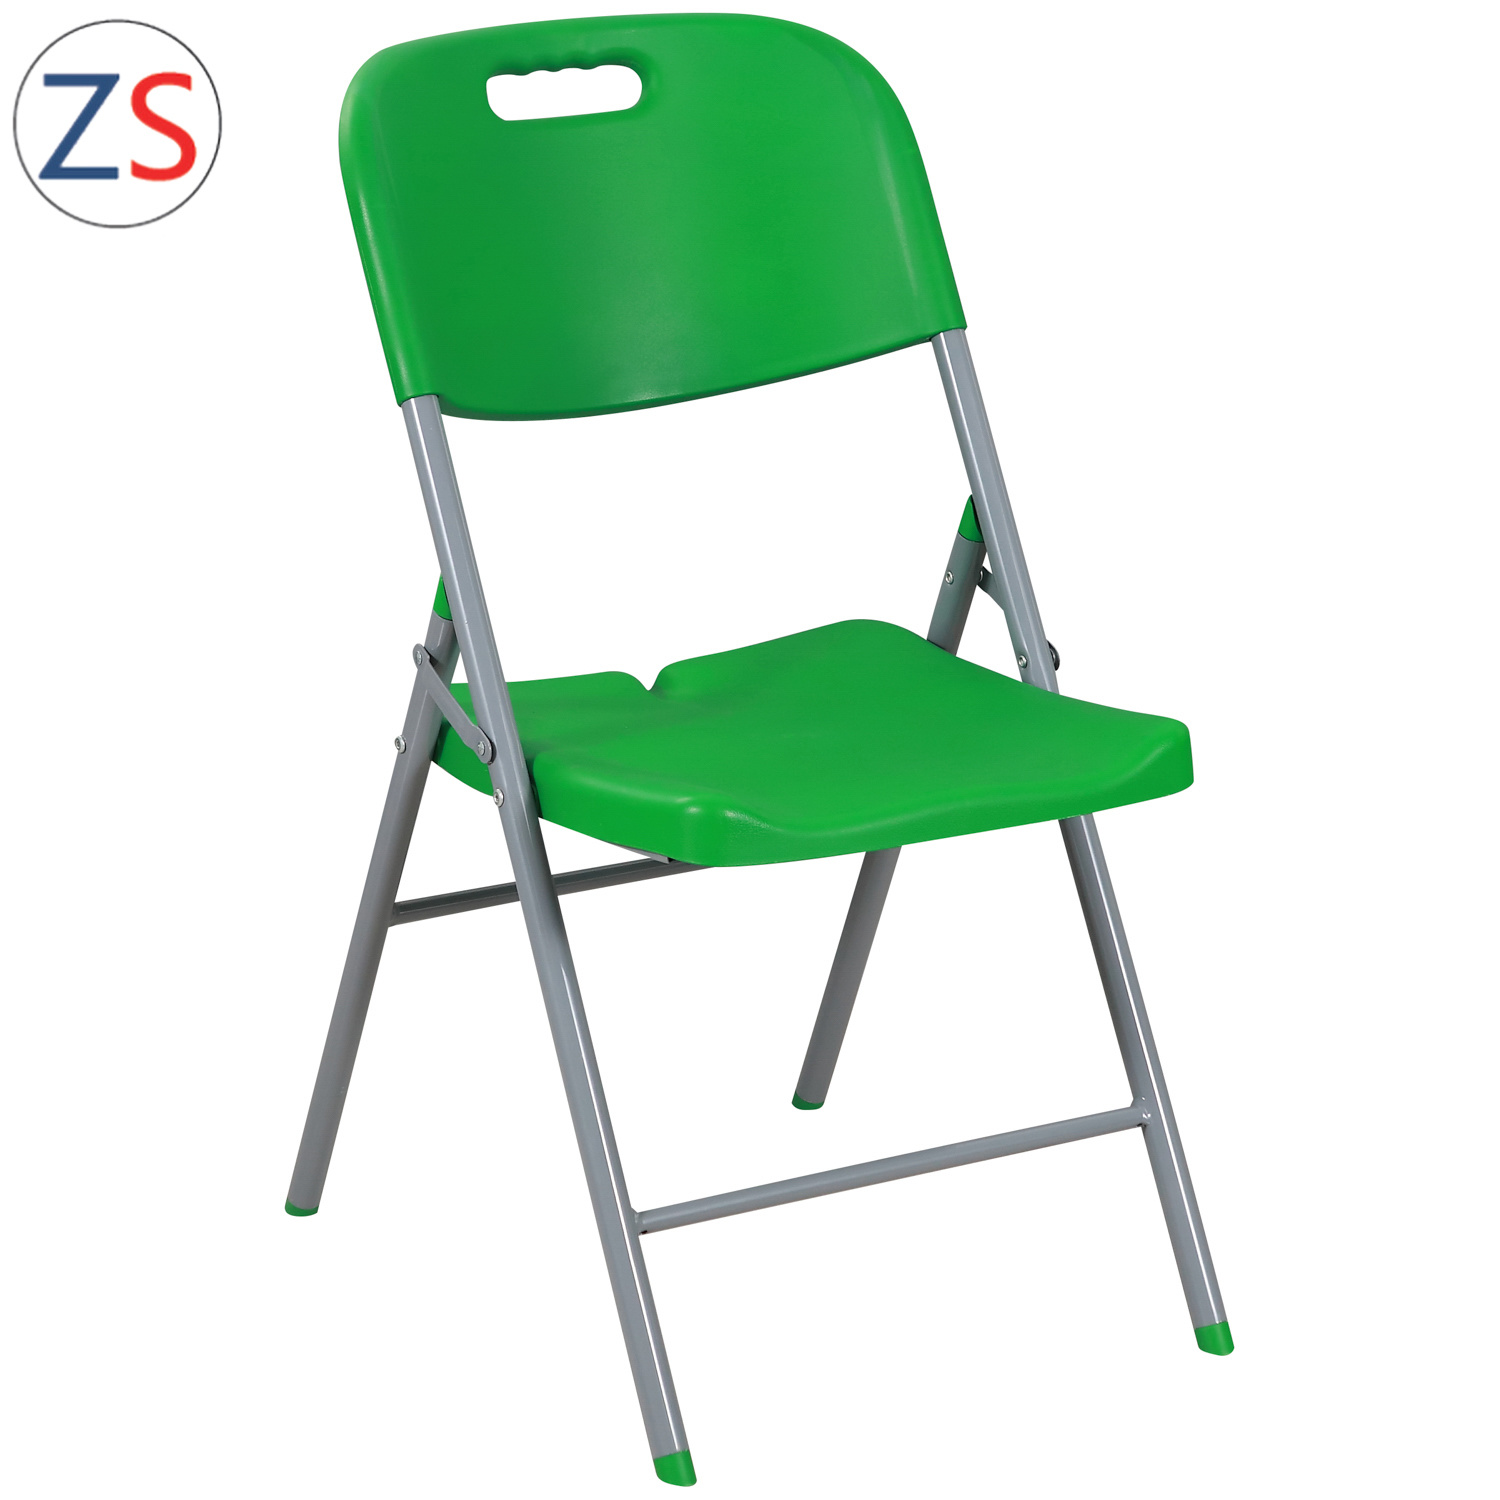 China Green Strong Outdoor Metal Plastic Folding Chair